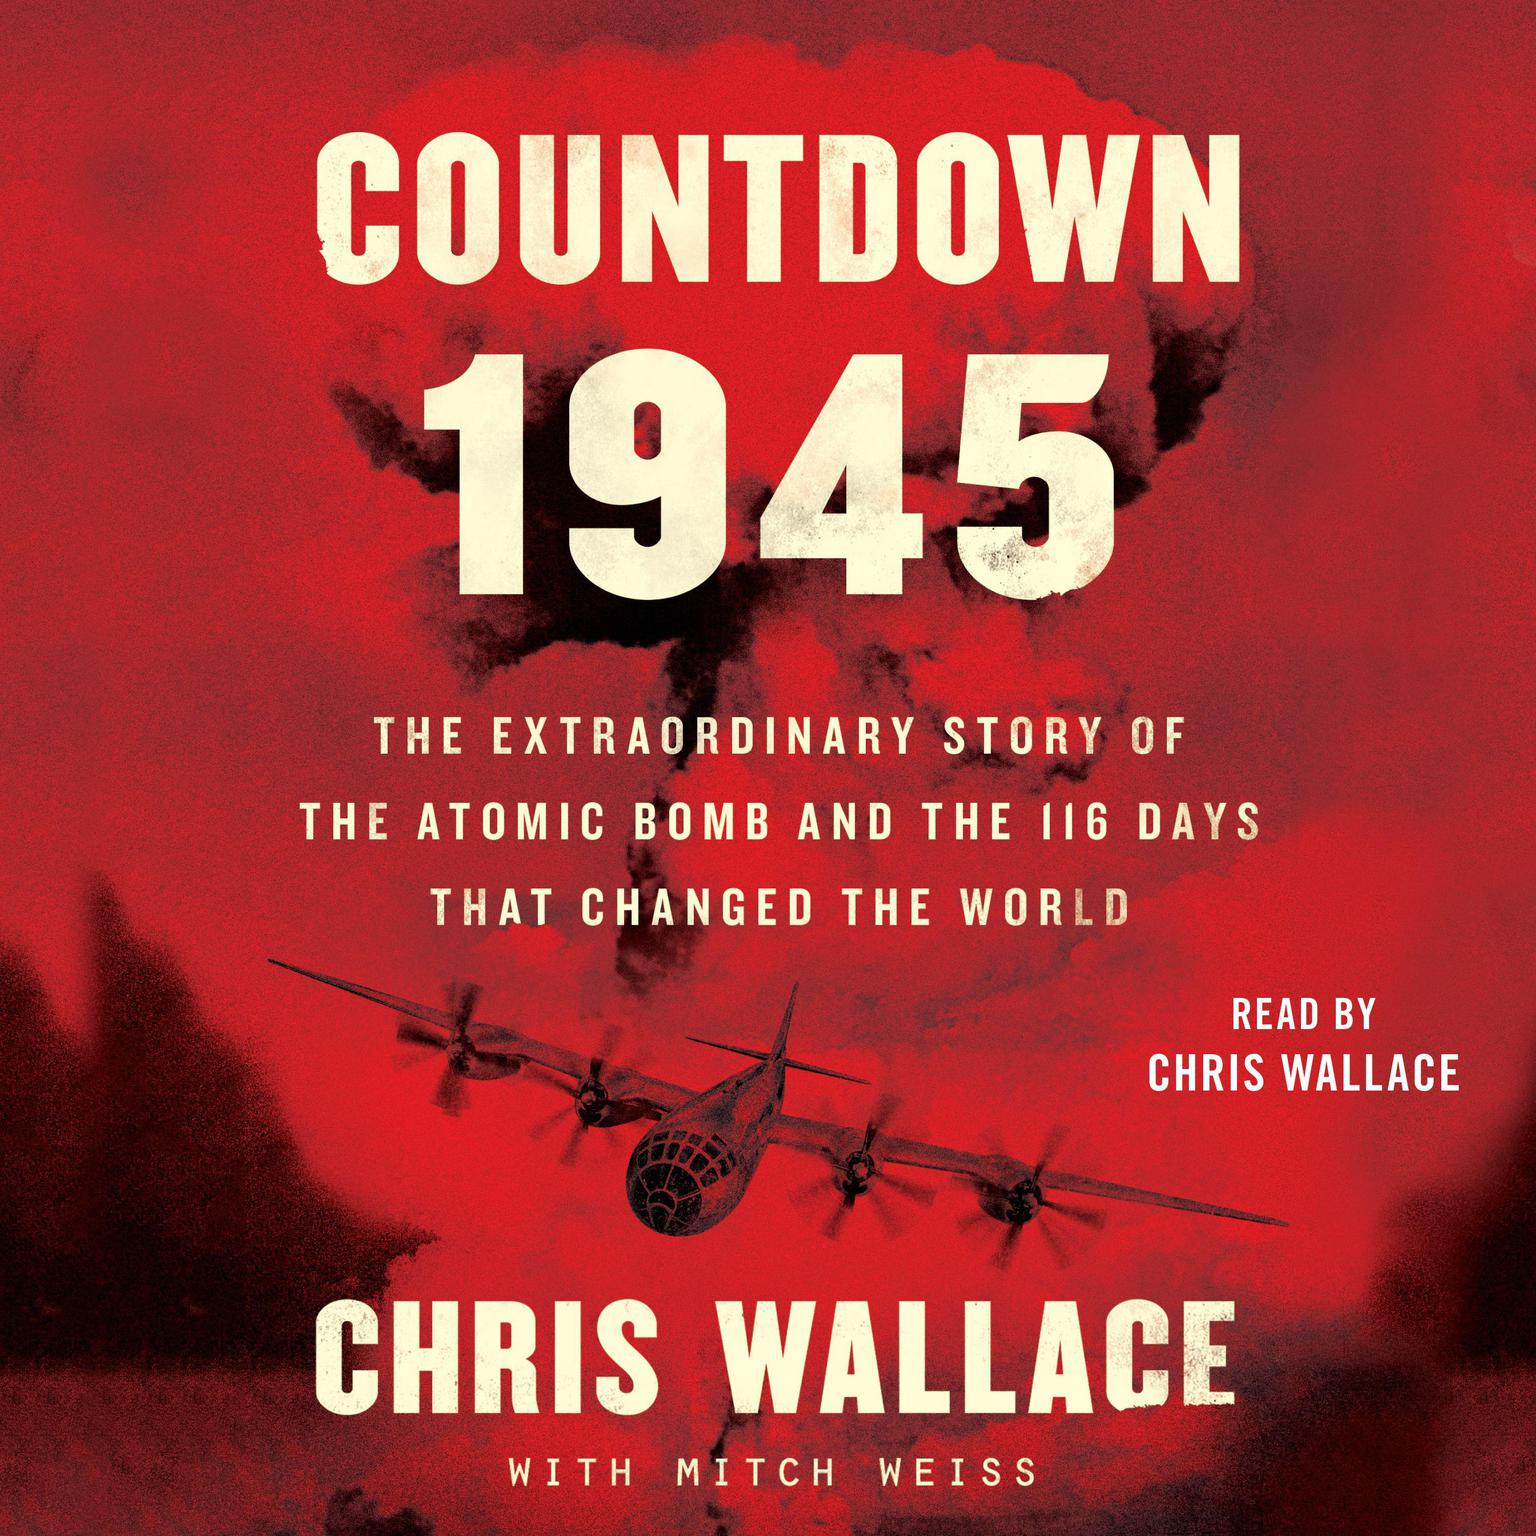 Printable Countdown 1945: The Extraordinary Story of the Atomic Bomb and the 116 Days That Changed the World Audiobook Cover Art